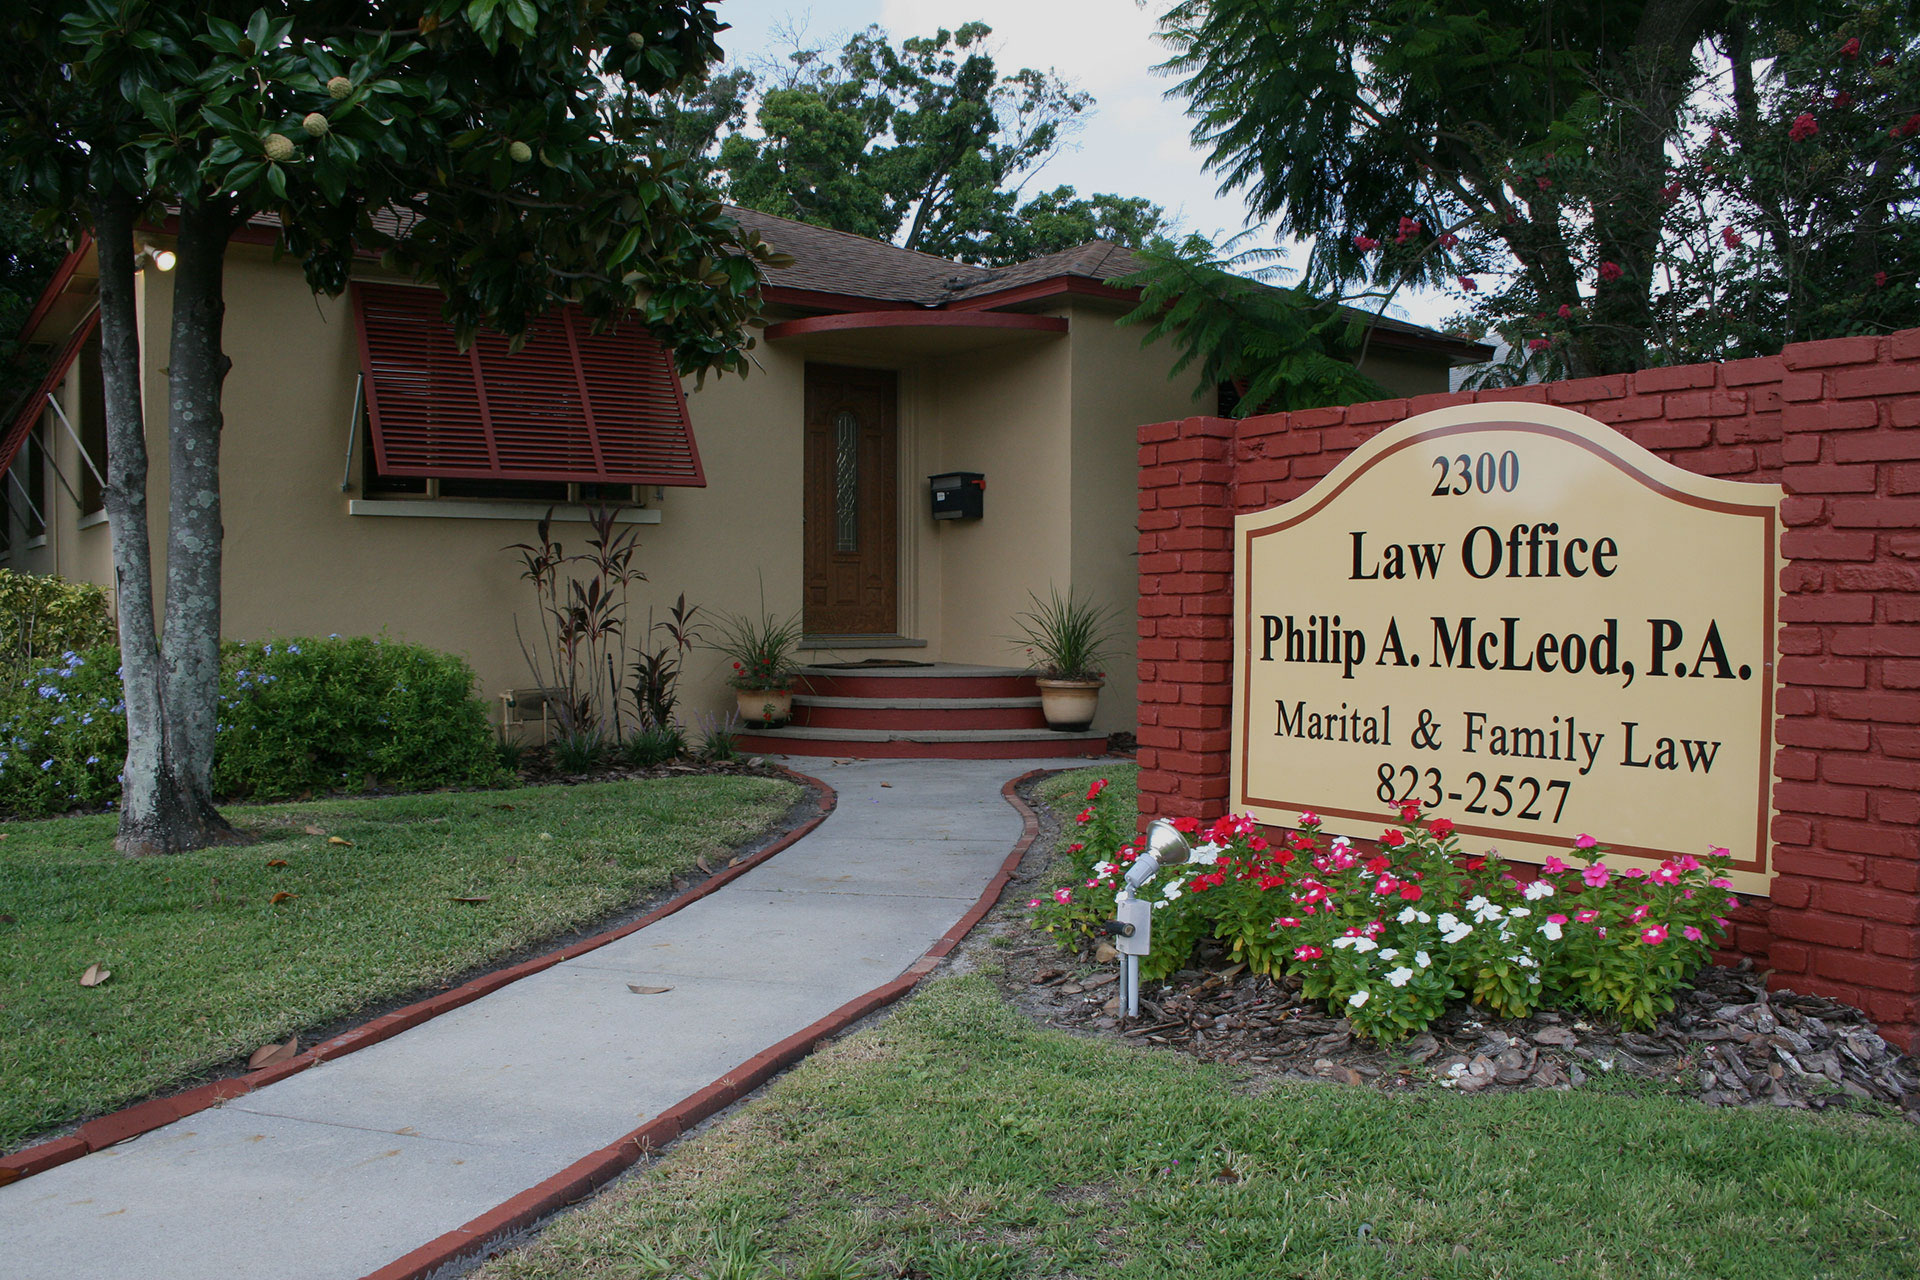 Law Office of Philip McLeod, P.A.